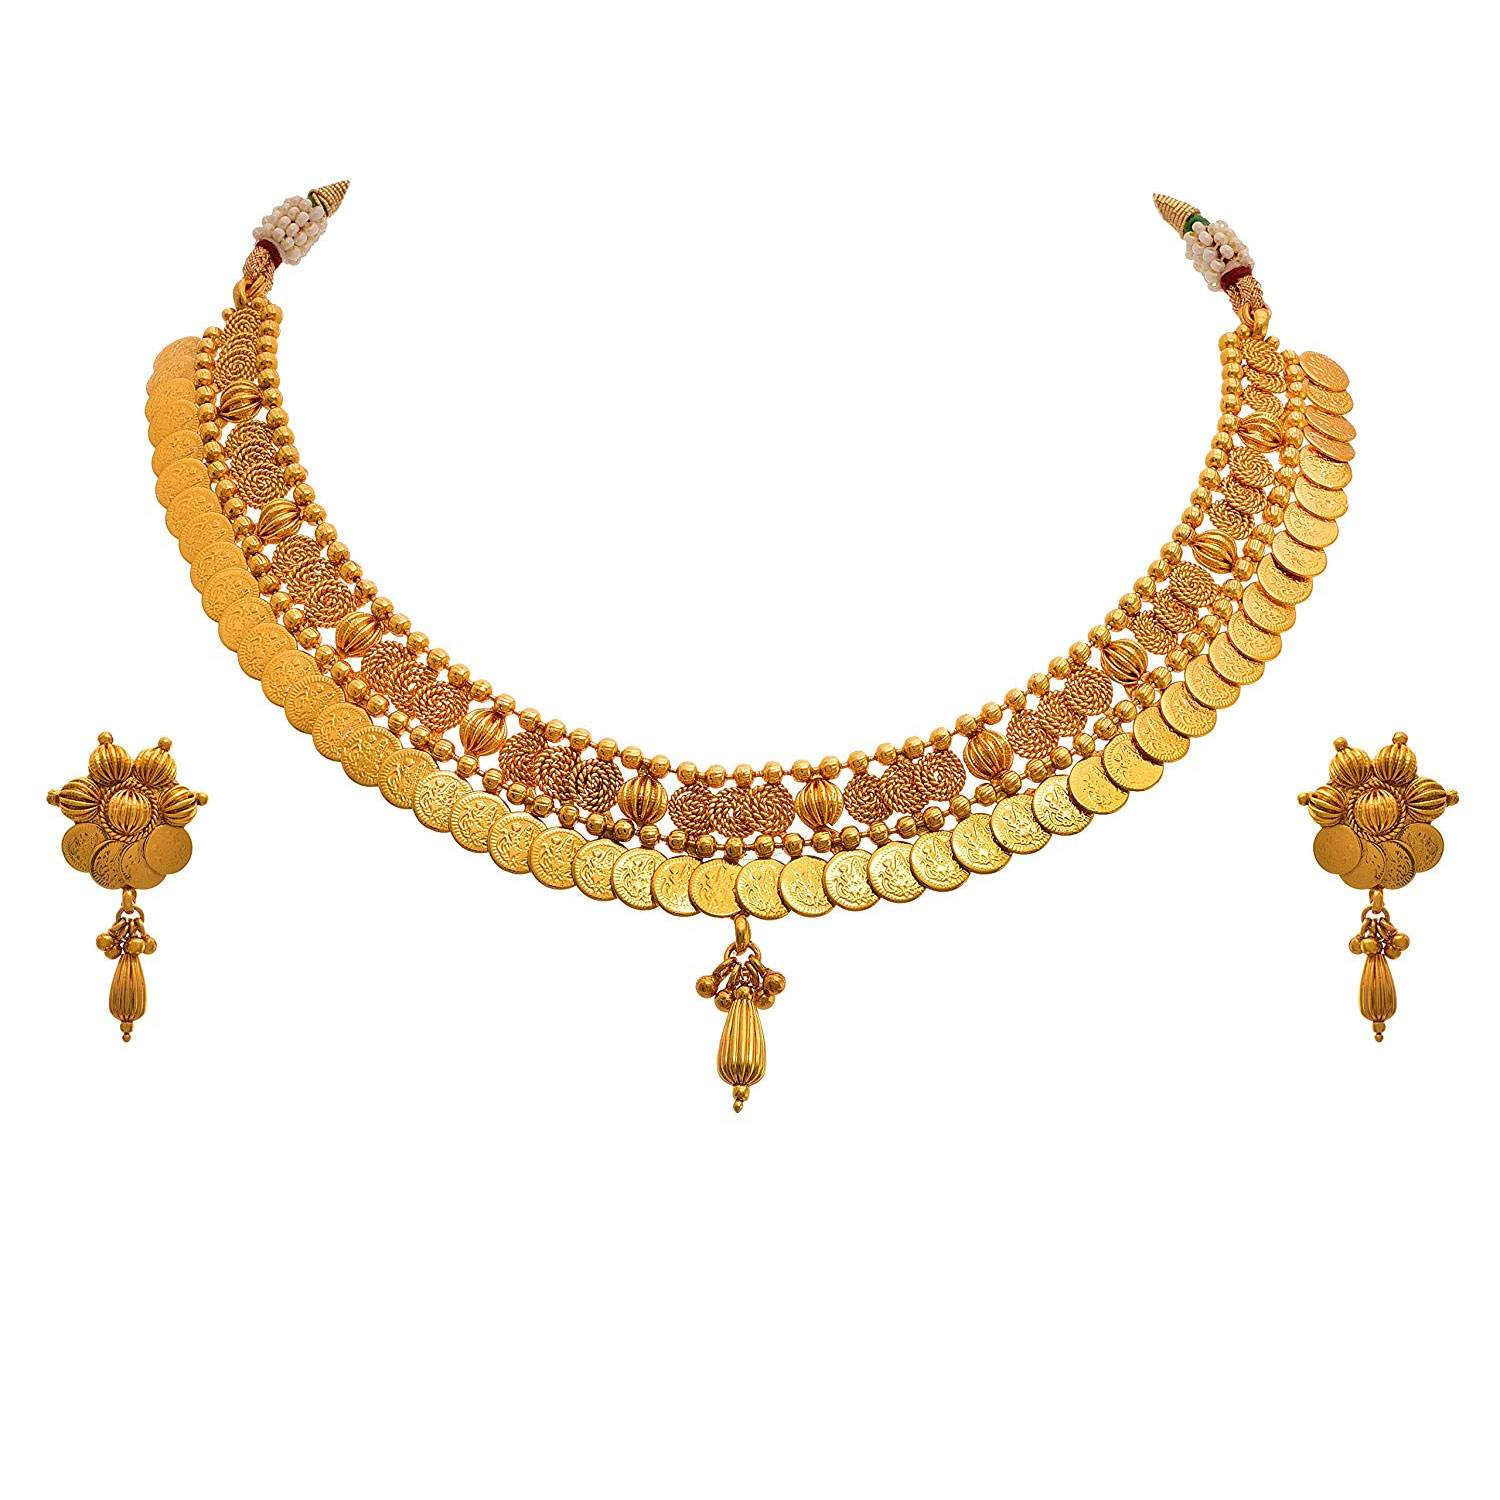 JFL - Traditional Ethnic Temple Laxmi Goddess One Gram Gold Plated Spiral Designer Necklace Set with Earring for Women and Girls